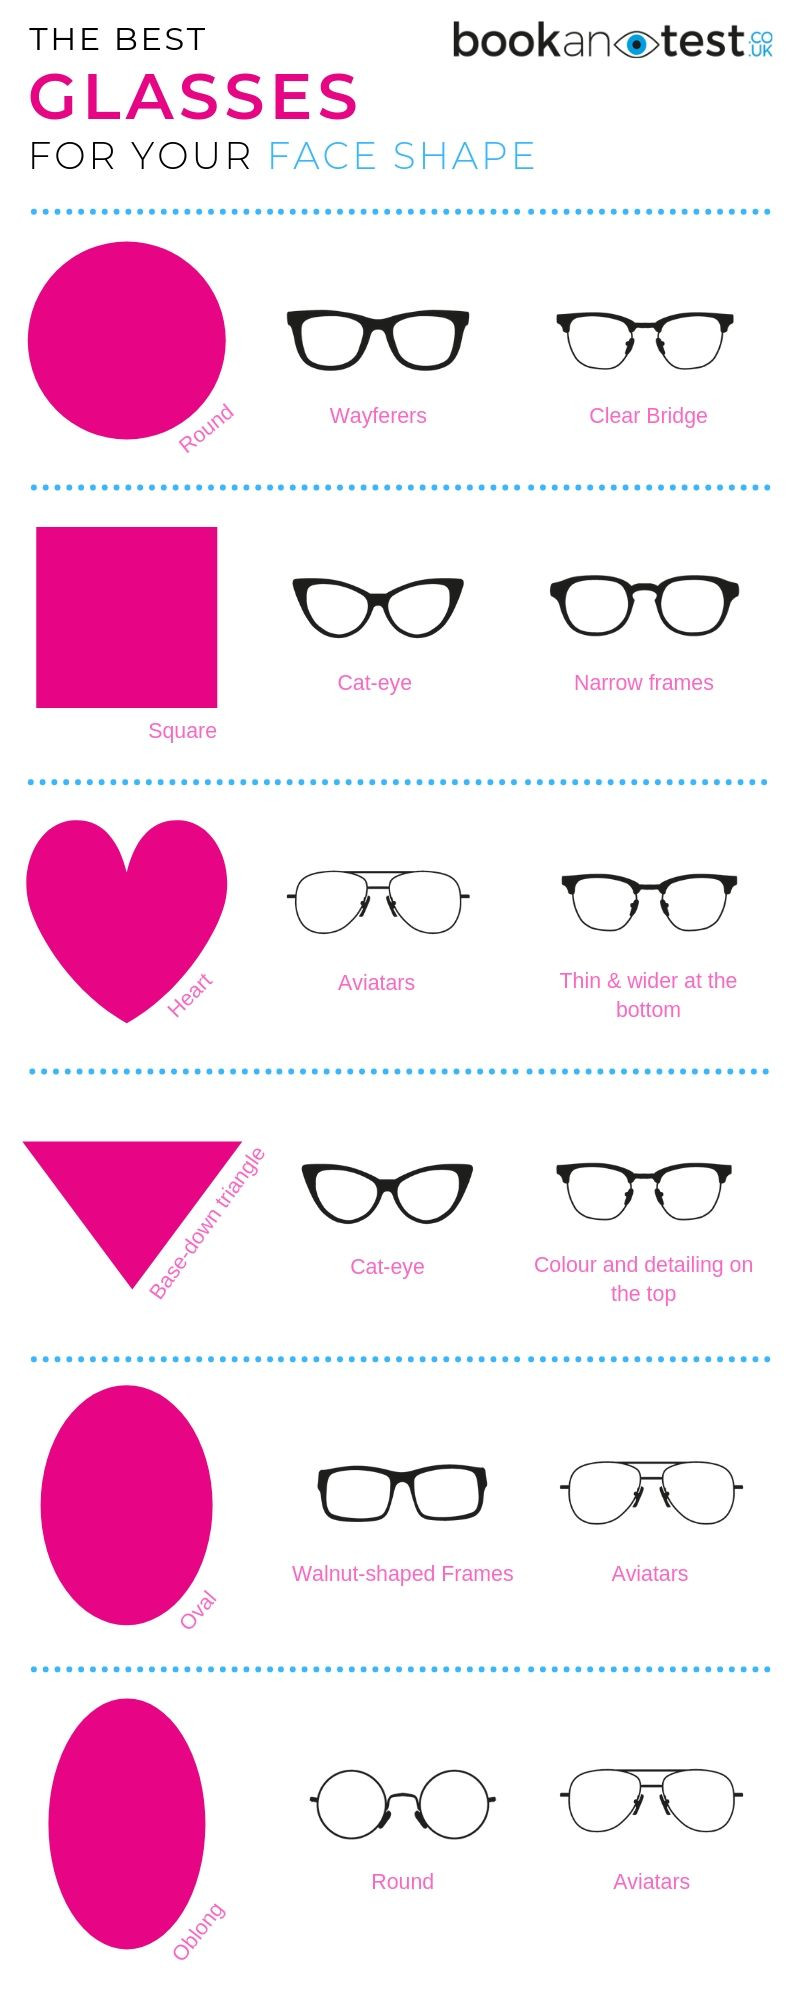 Glasses to Match Your Face Shape